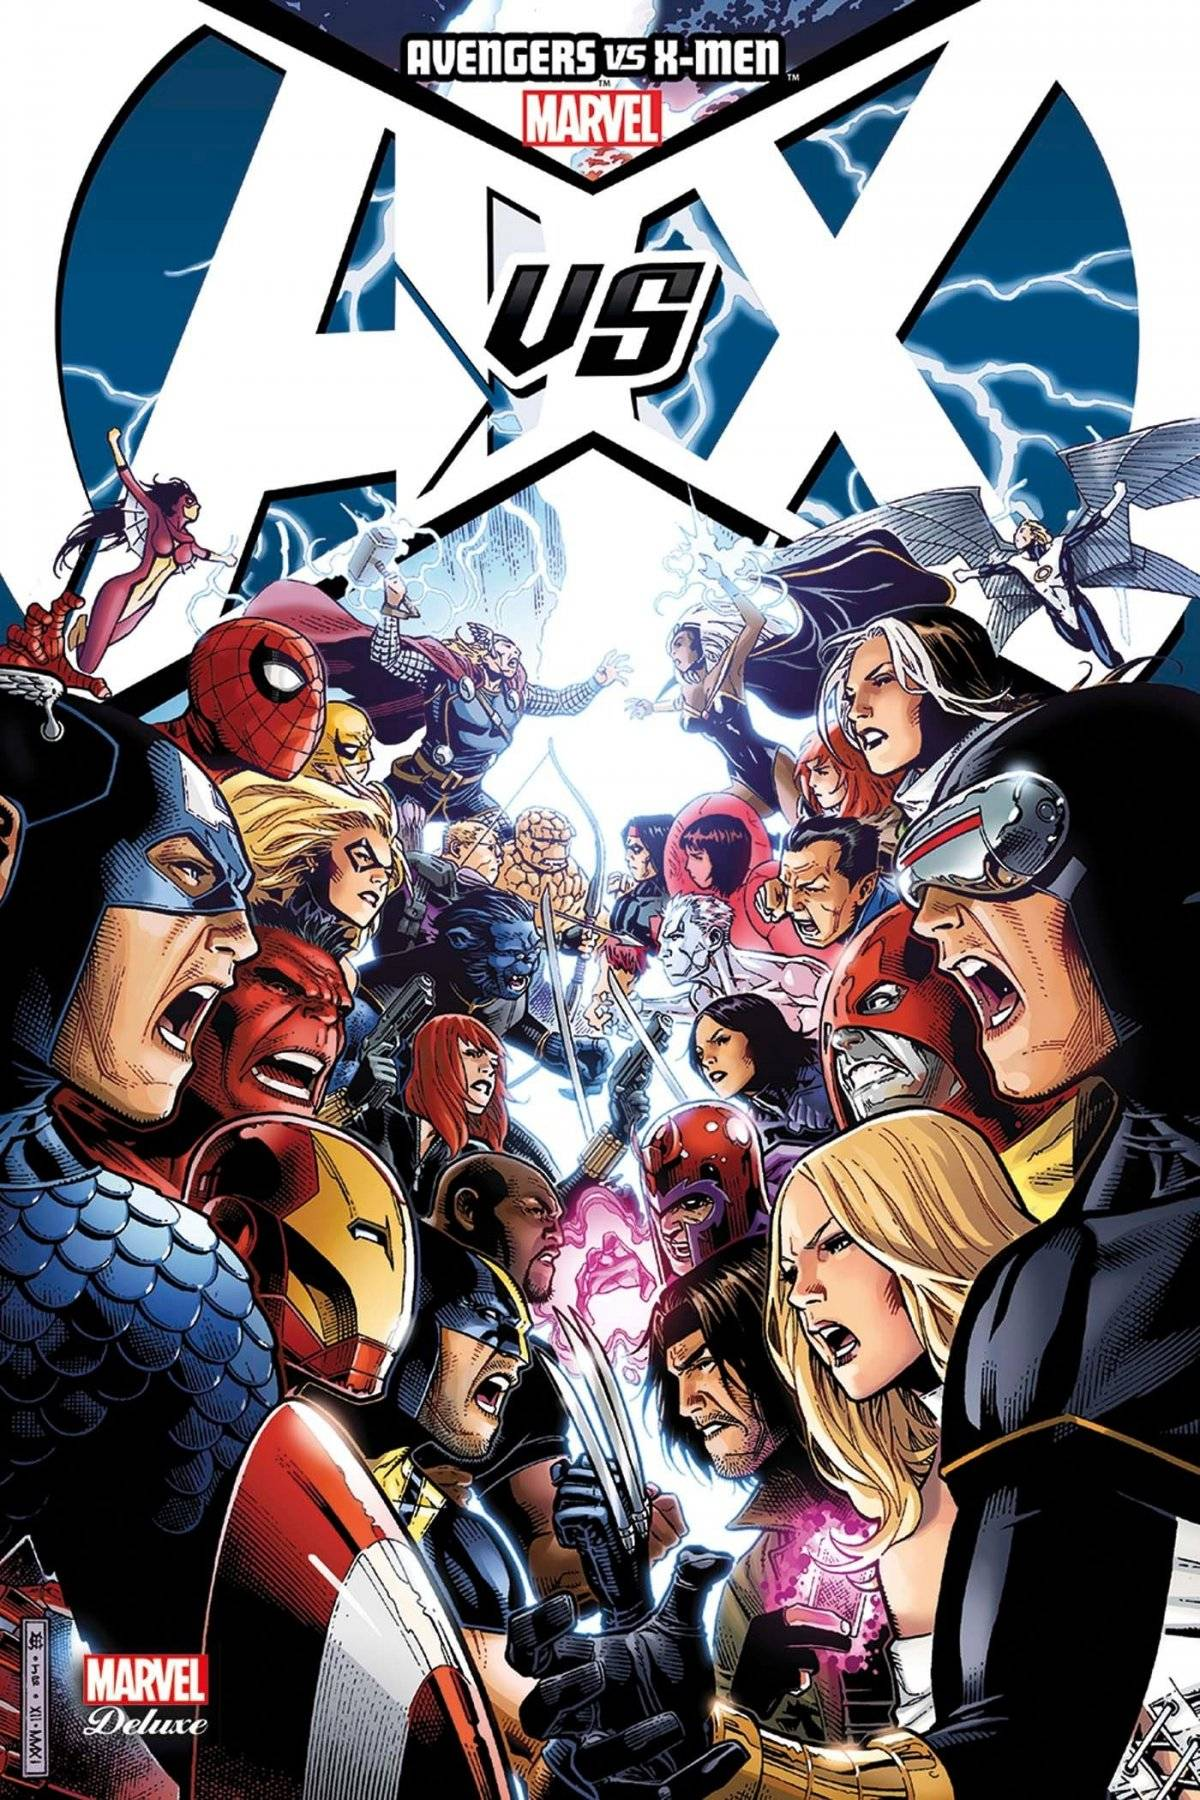 Marvel estaría planeando crossover de 'Avengers vs. X-Men'